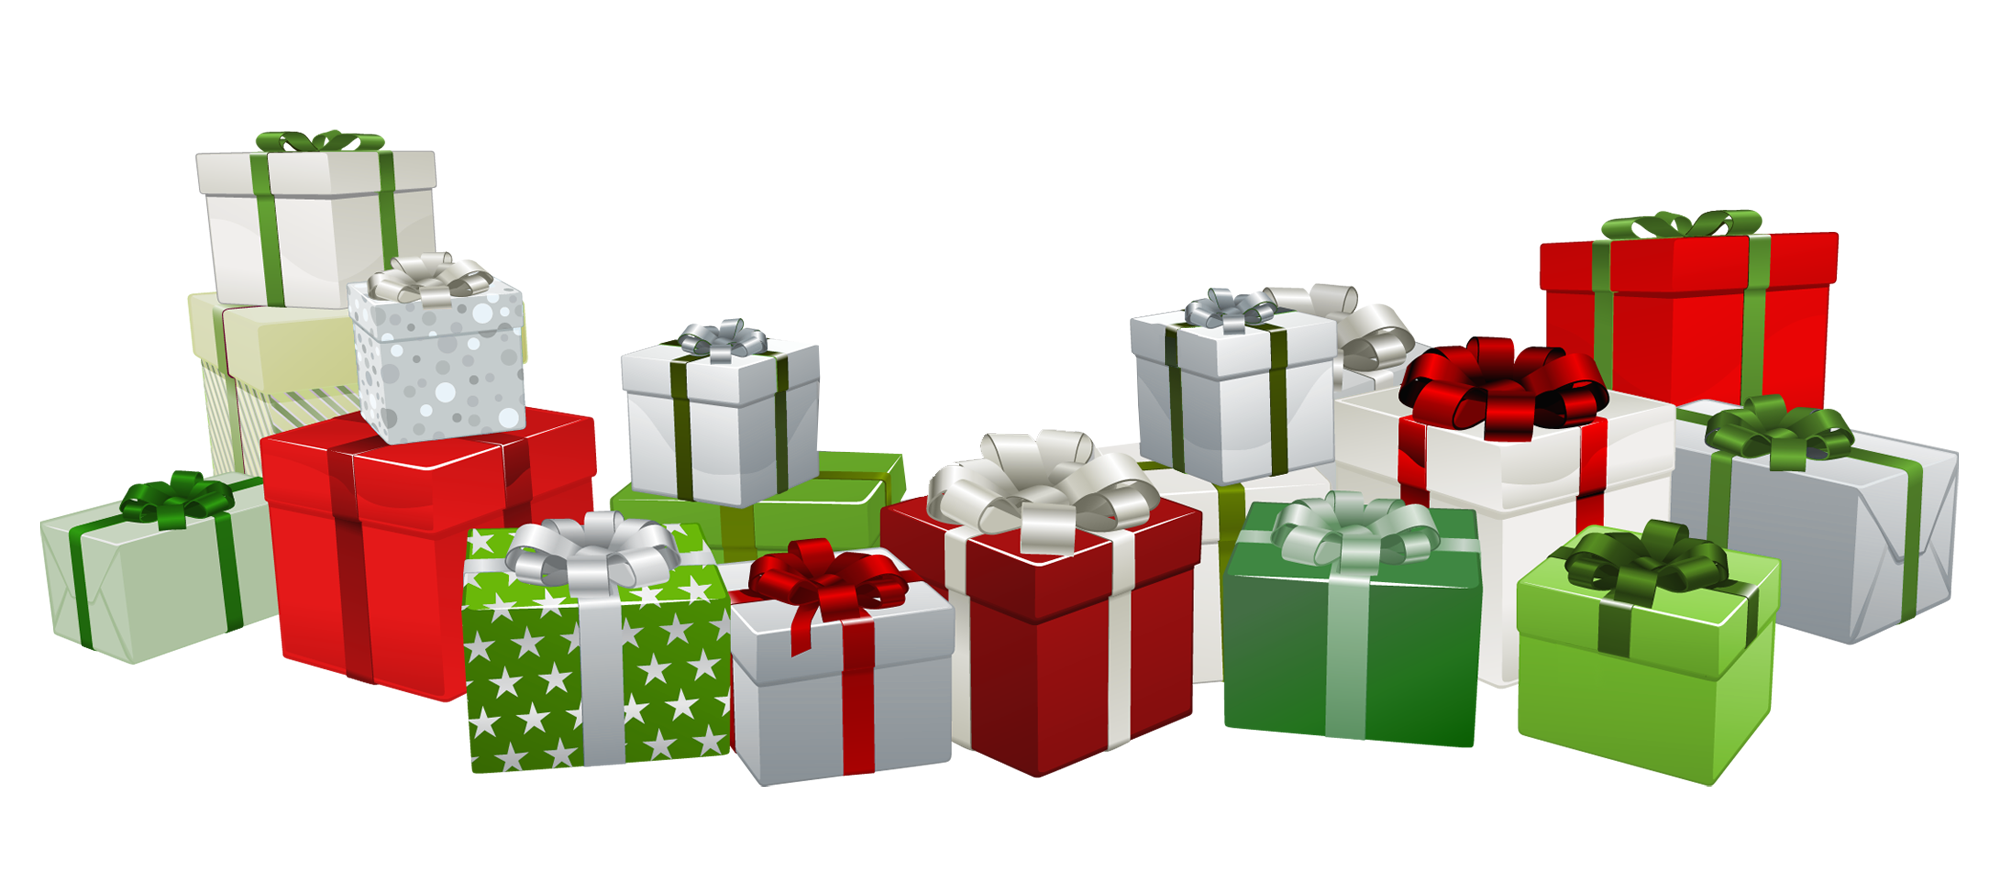 Christmas presents clipart graphic library Transparent Presents PNG Clipart | Gallery Yopriceville - High ... graphic library